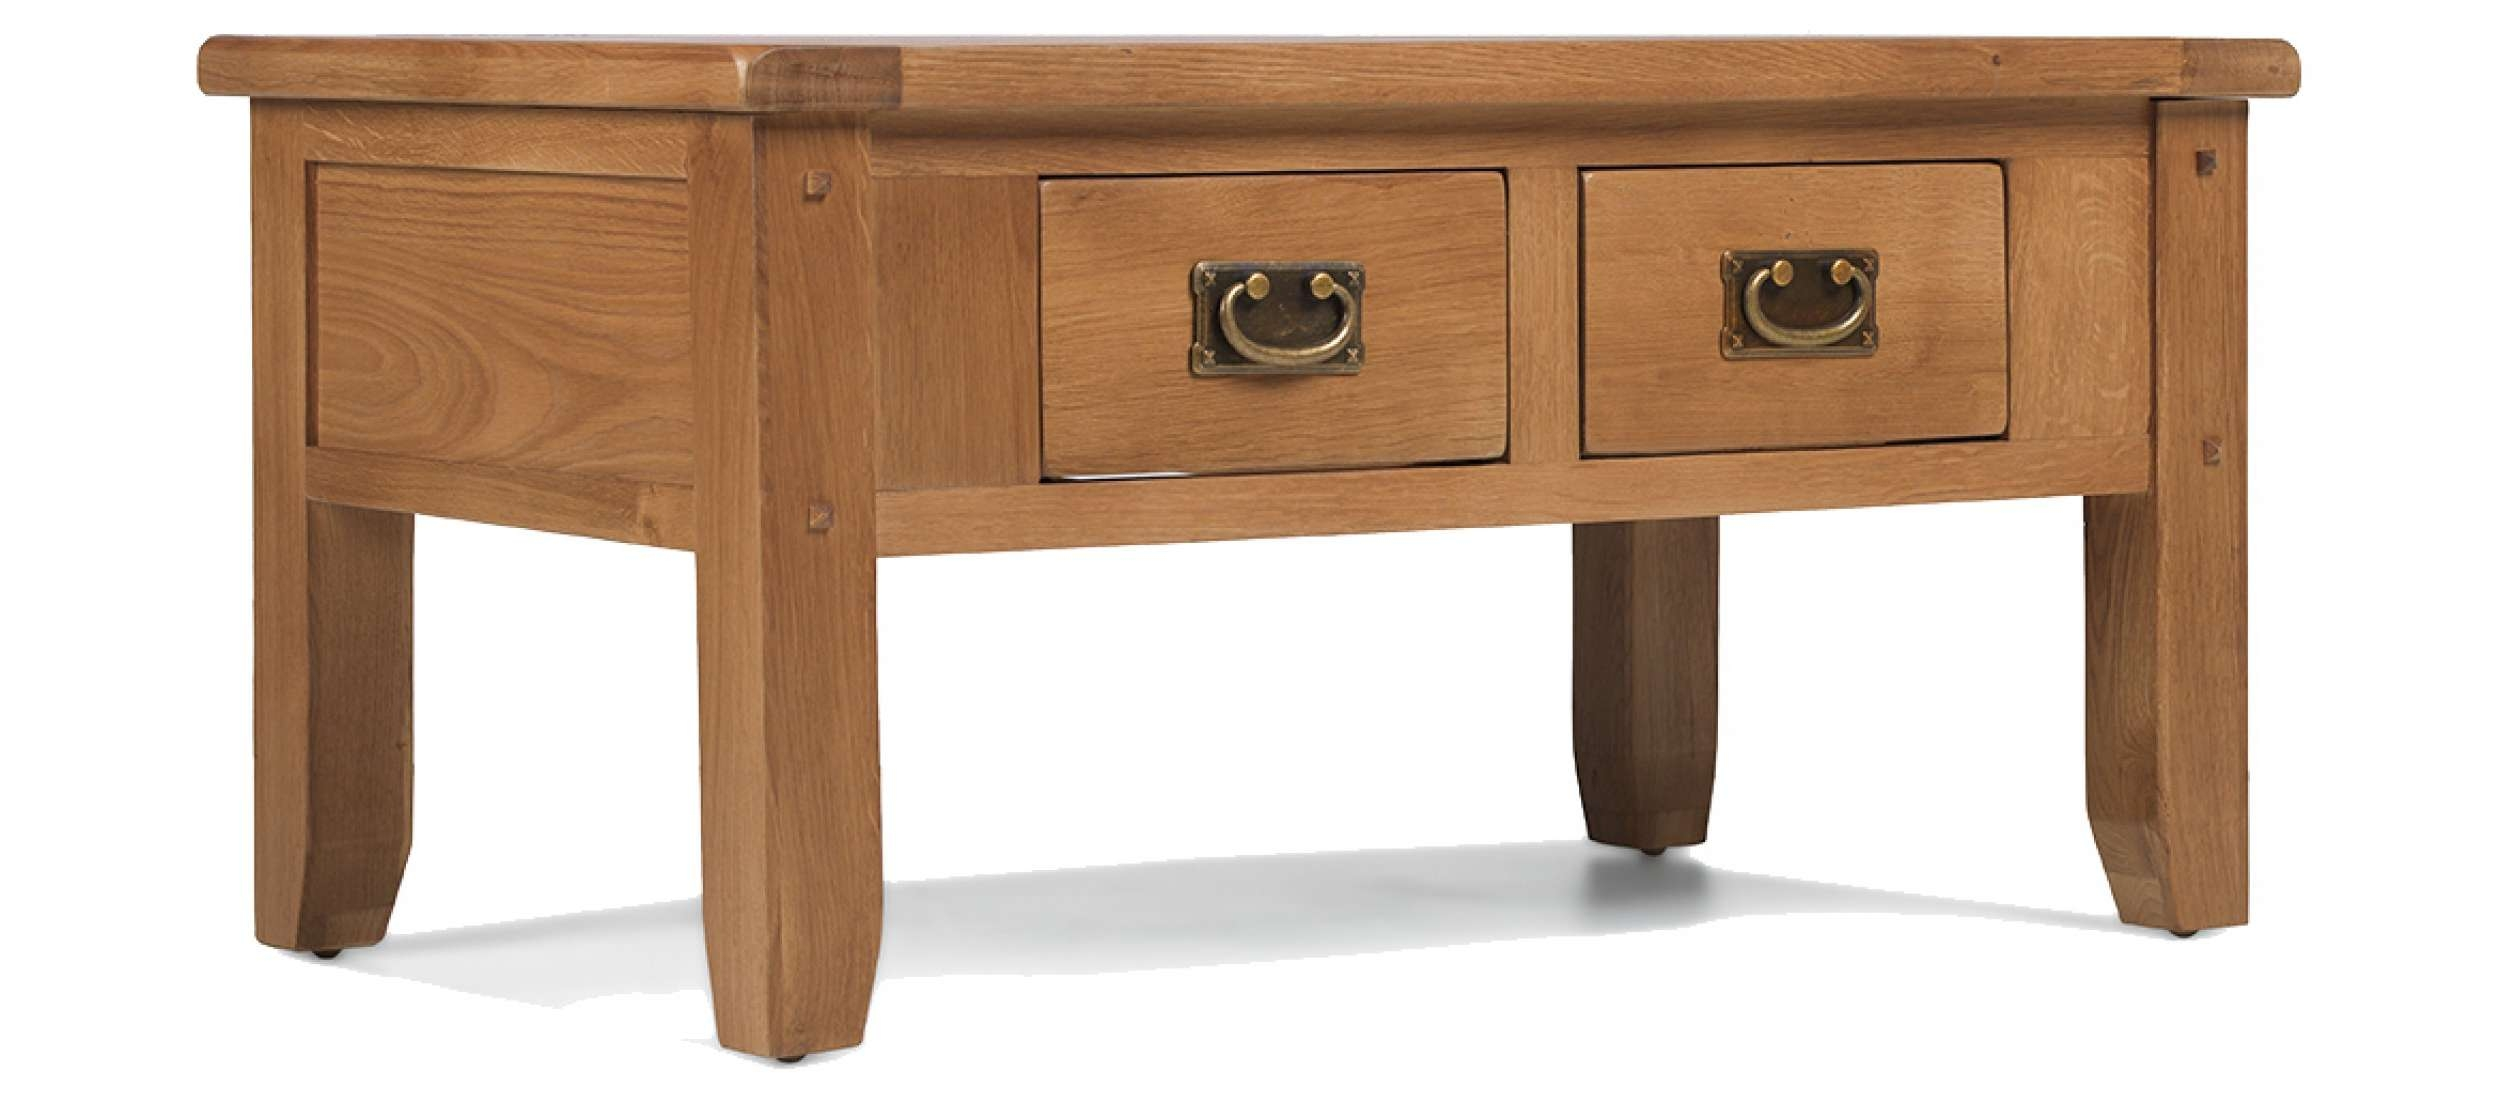 Preferred Rustic Oak Coffee Table With Drawers With Regard To Coffee Table : Magnificent Small Round Coffee Table Solid Wood (View 16 of 20)